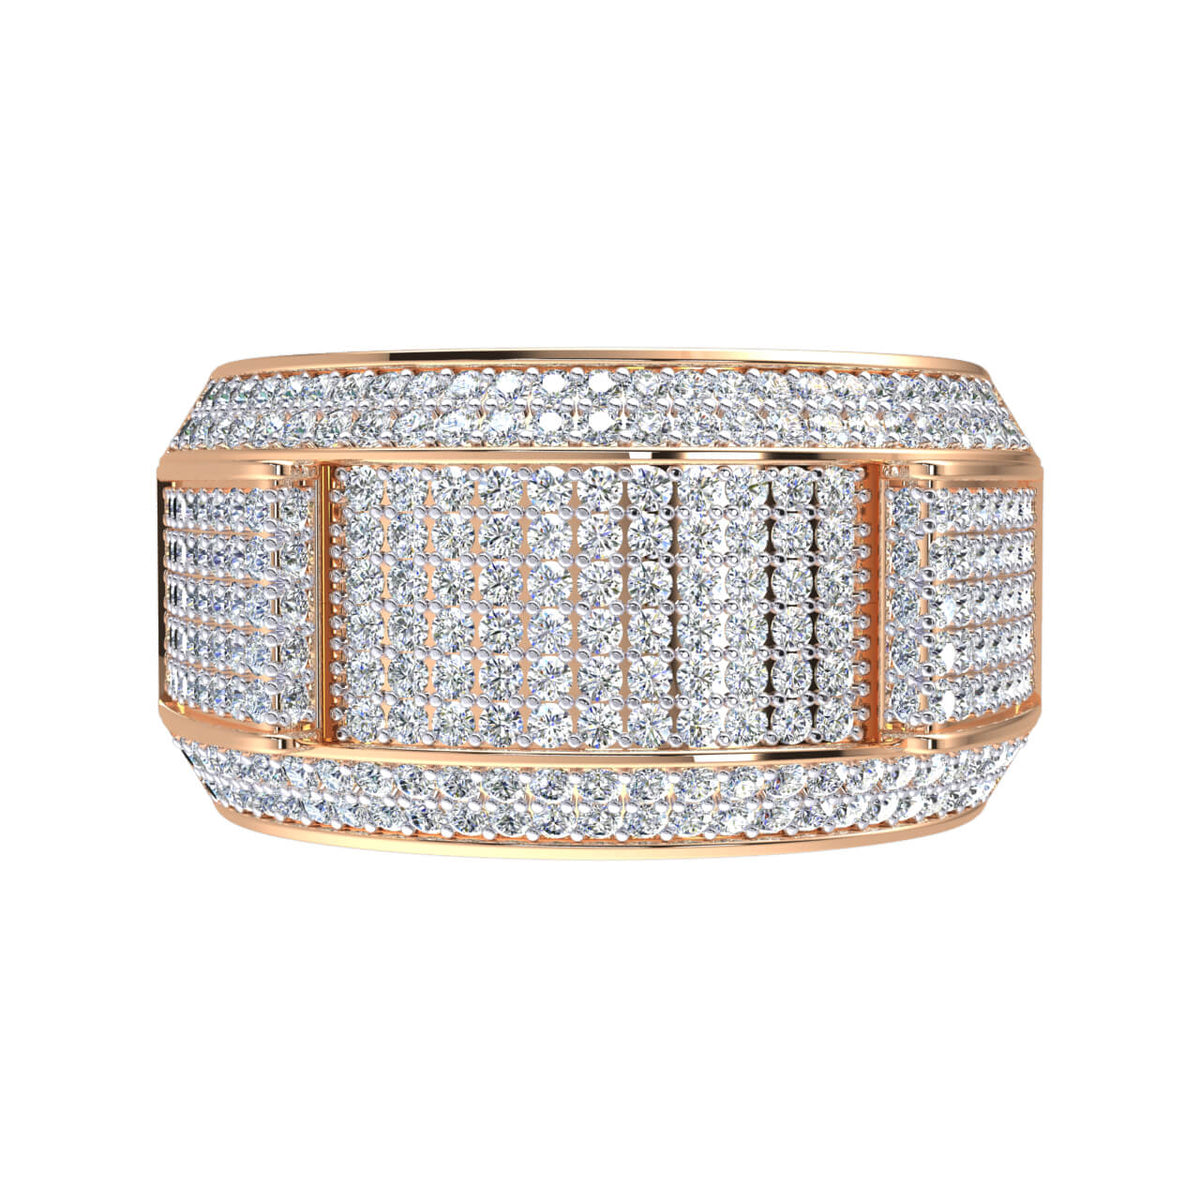 1.50 Ct Natural Diamond H Si2 Men's Pinky Ring in 10k Gold